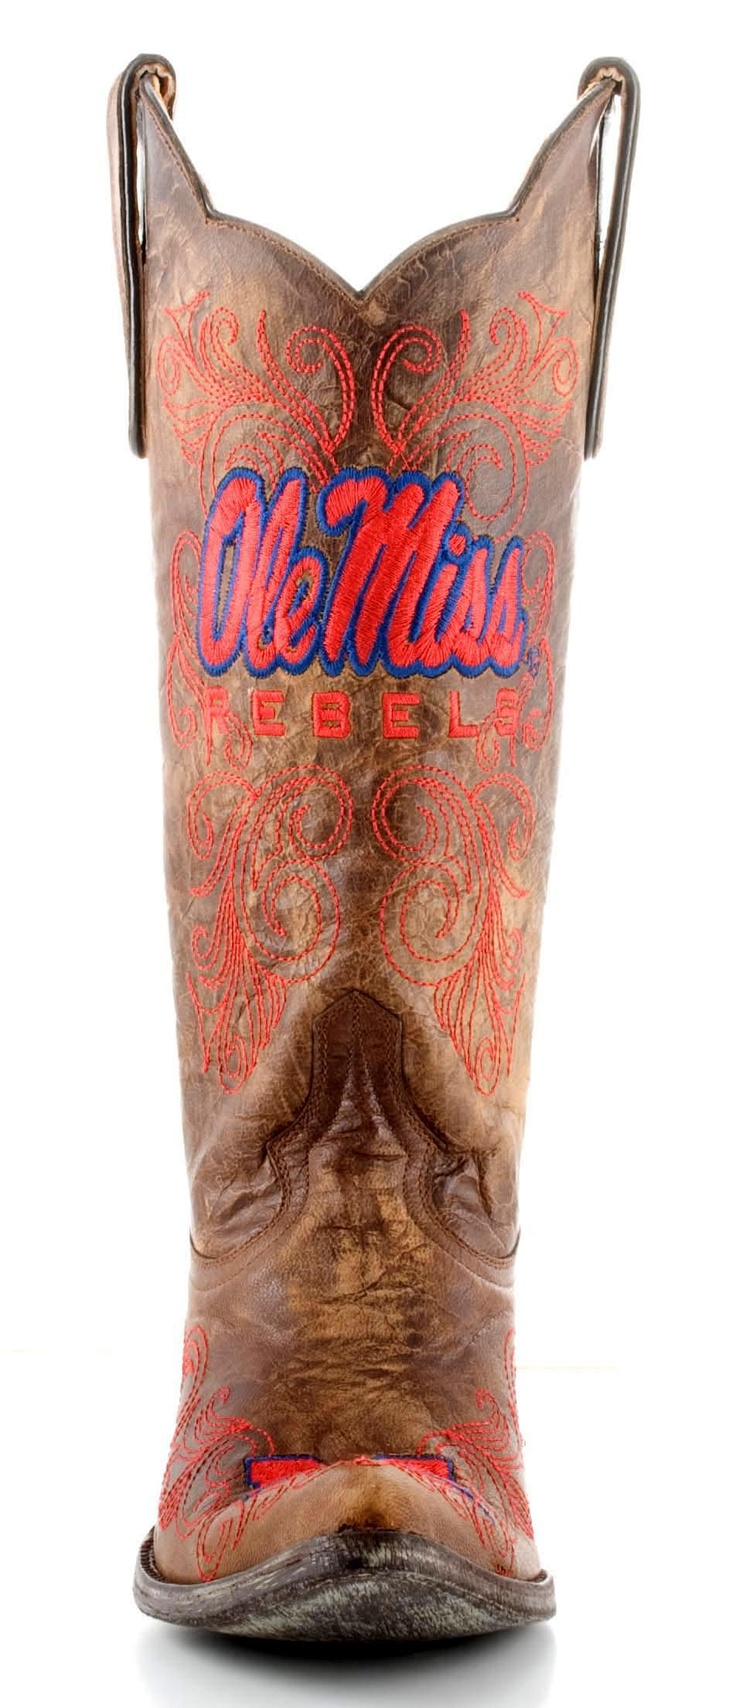 Love!Boots Women, Gosh Almighty, Colleges Football, Westerns Boots, Hotties Toddy, Gameday Boots, Cowgirls Boots, Women Boots, Ole Miss